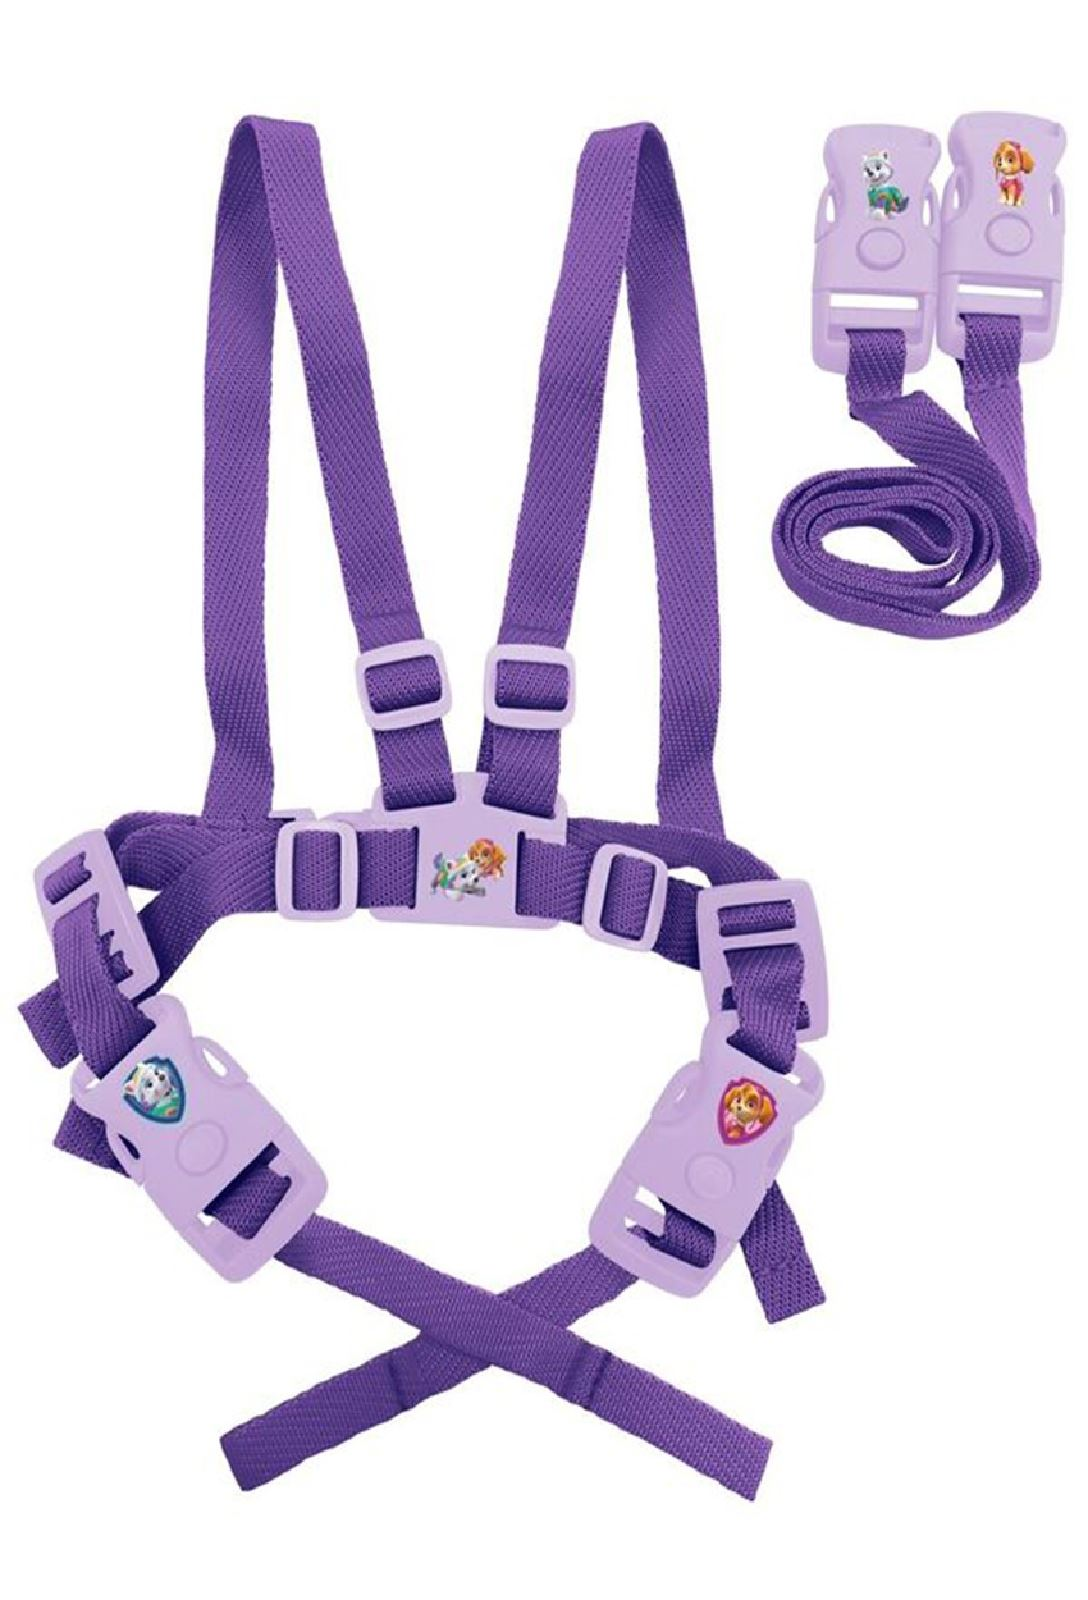 Girls Toddler Paw Patrol Skye Everest Safety Walking Harness Travel Reins Purple